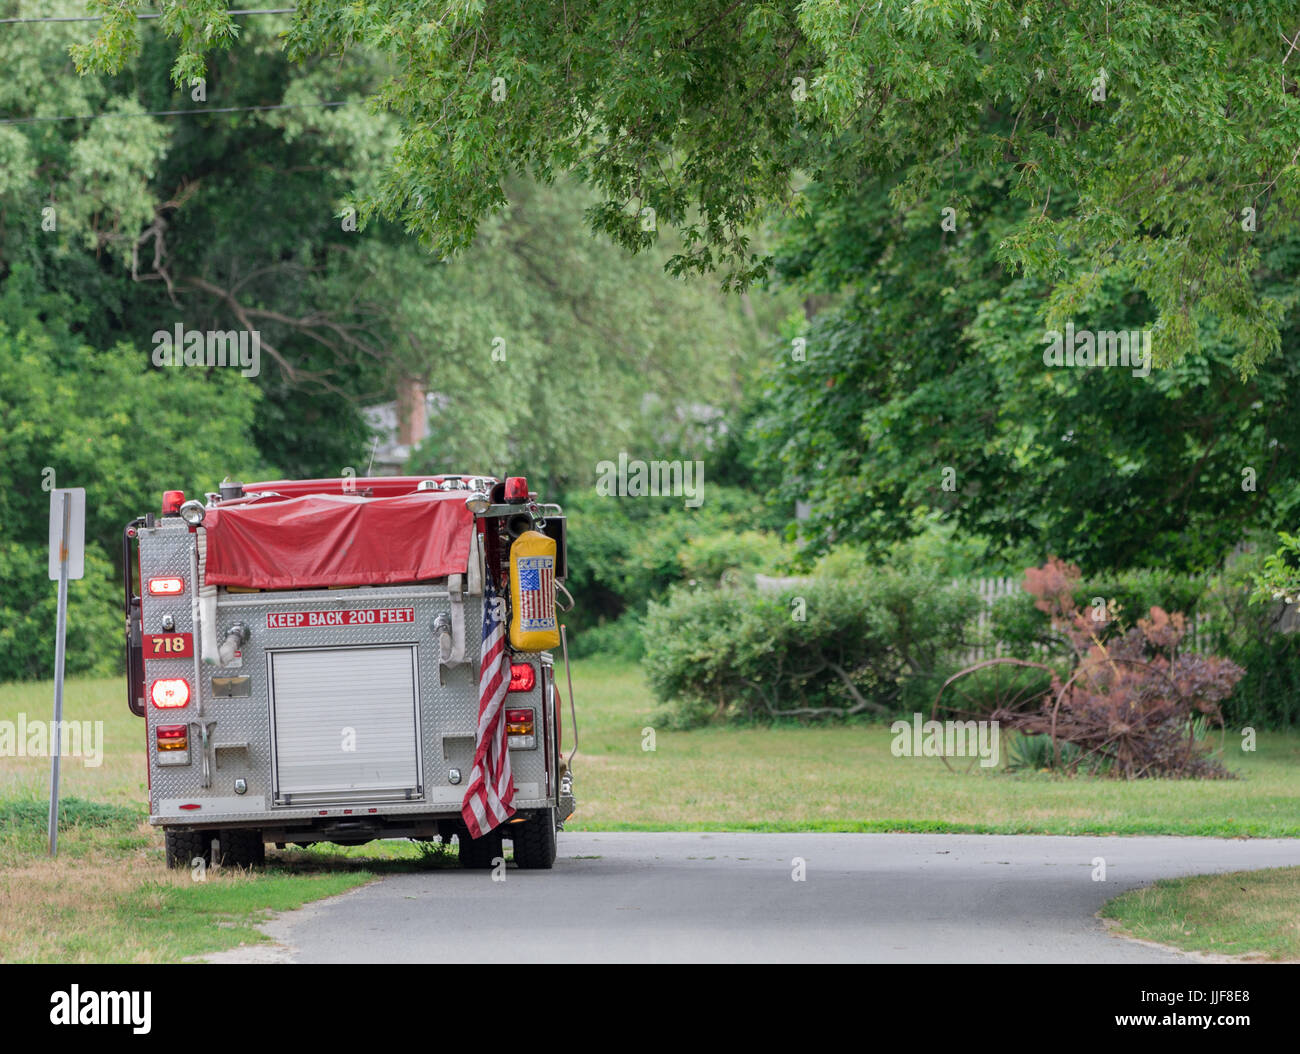 the rear of a sag harbor fire department truck at havens beach in sag harbor, ny - Stock Image